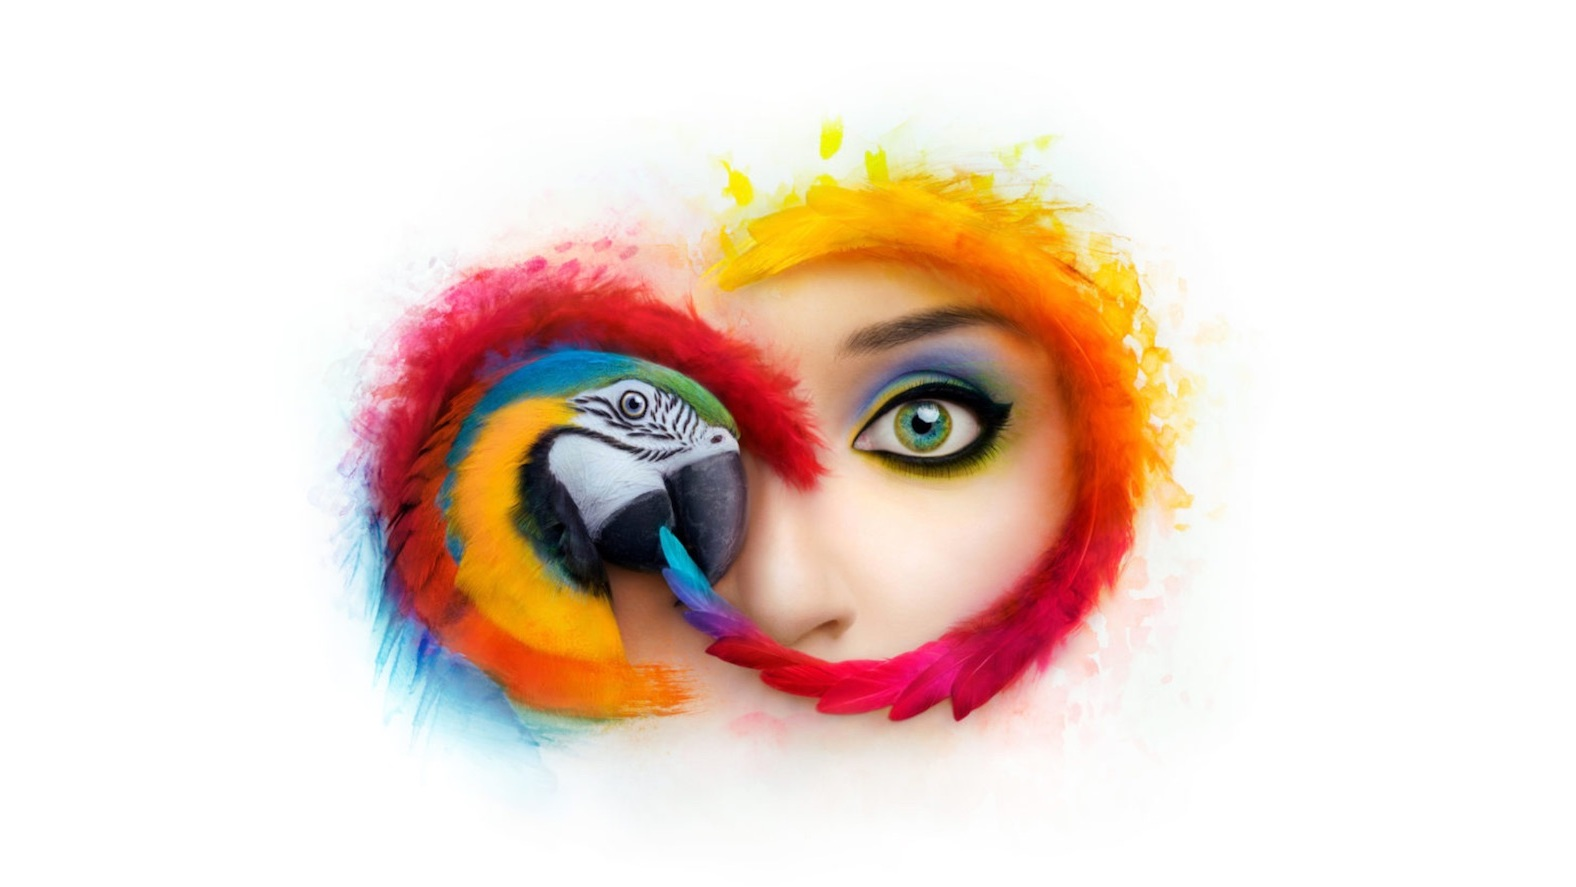 Adobe Says Goodbye To Old Versions Of Creative Cloud Desktop Apps - Adobe has announced an abrupt change to the availability of older versions of Creative Cloud apps.